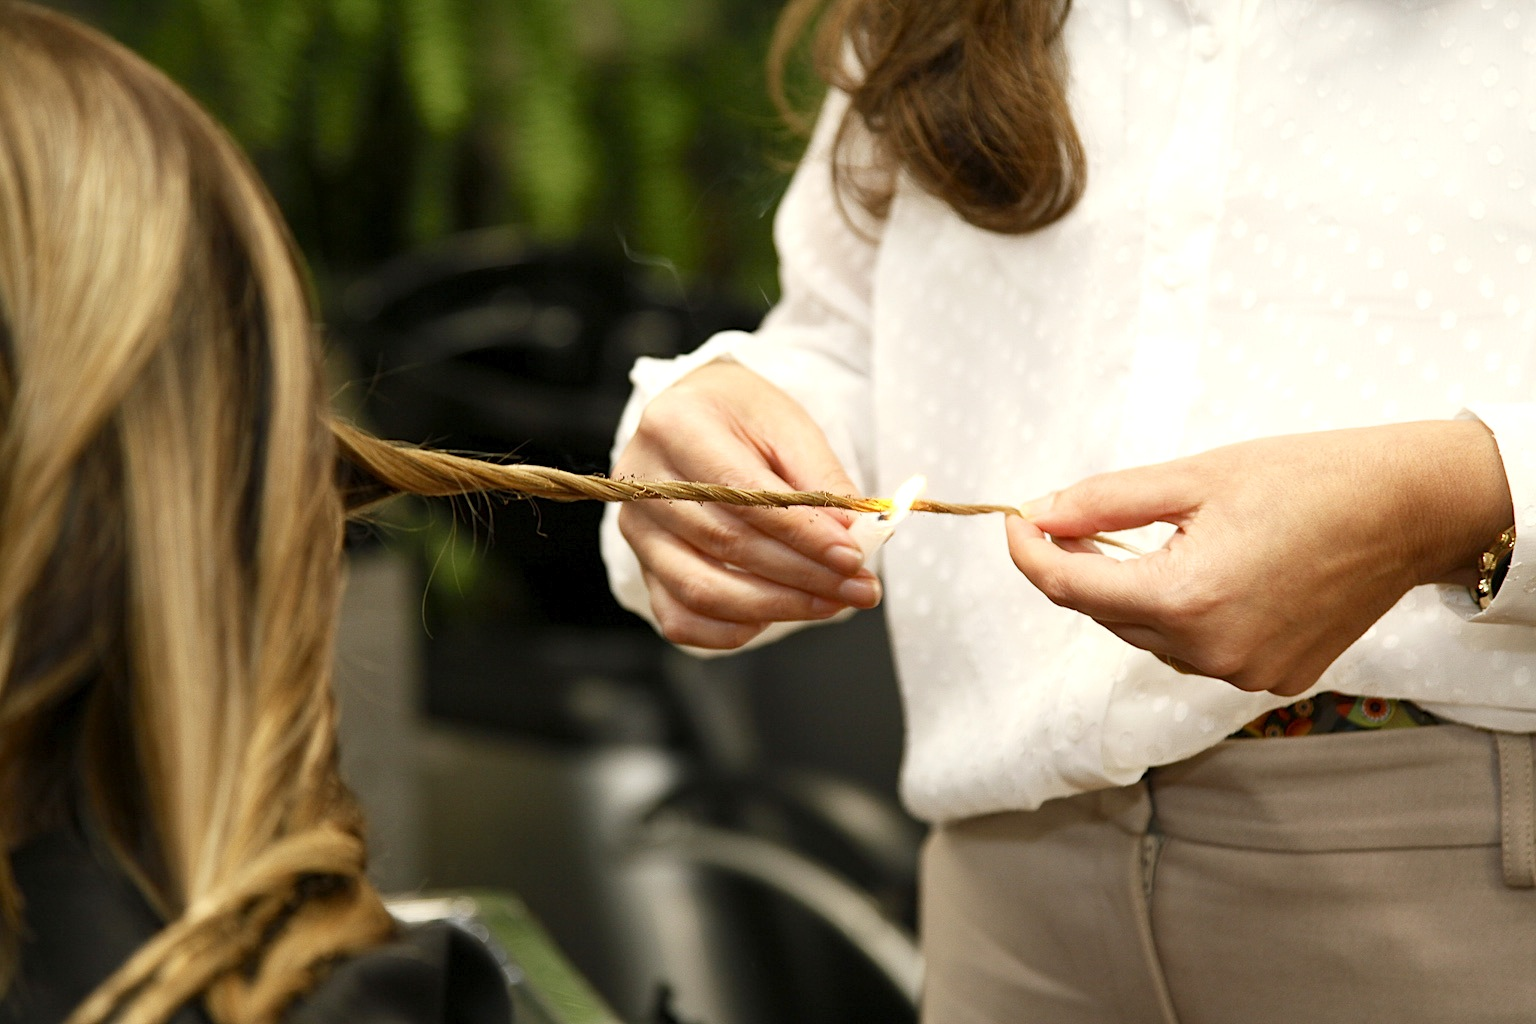 Velaterapia. What Are the Effects of the Candle-Cutting Hair